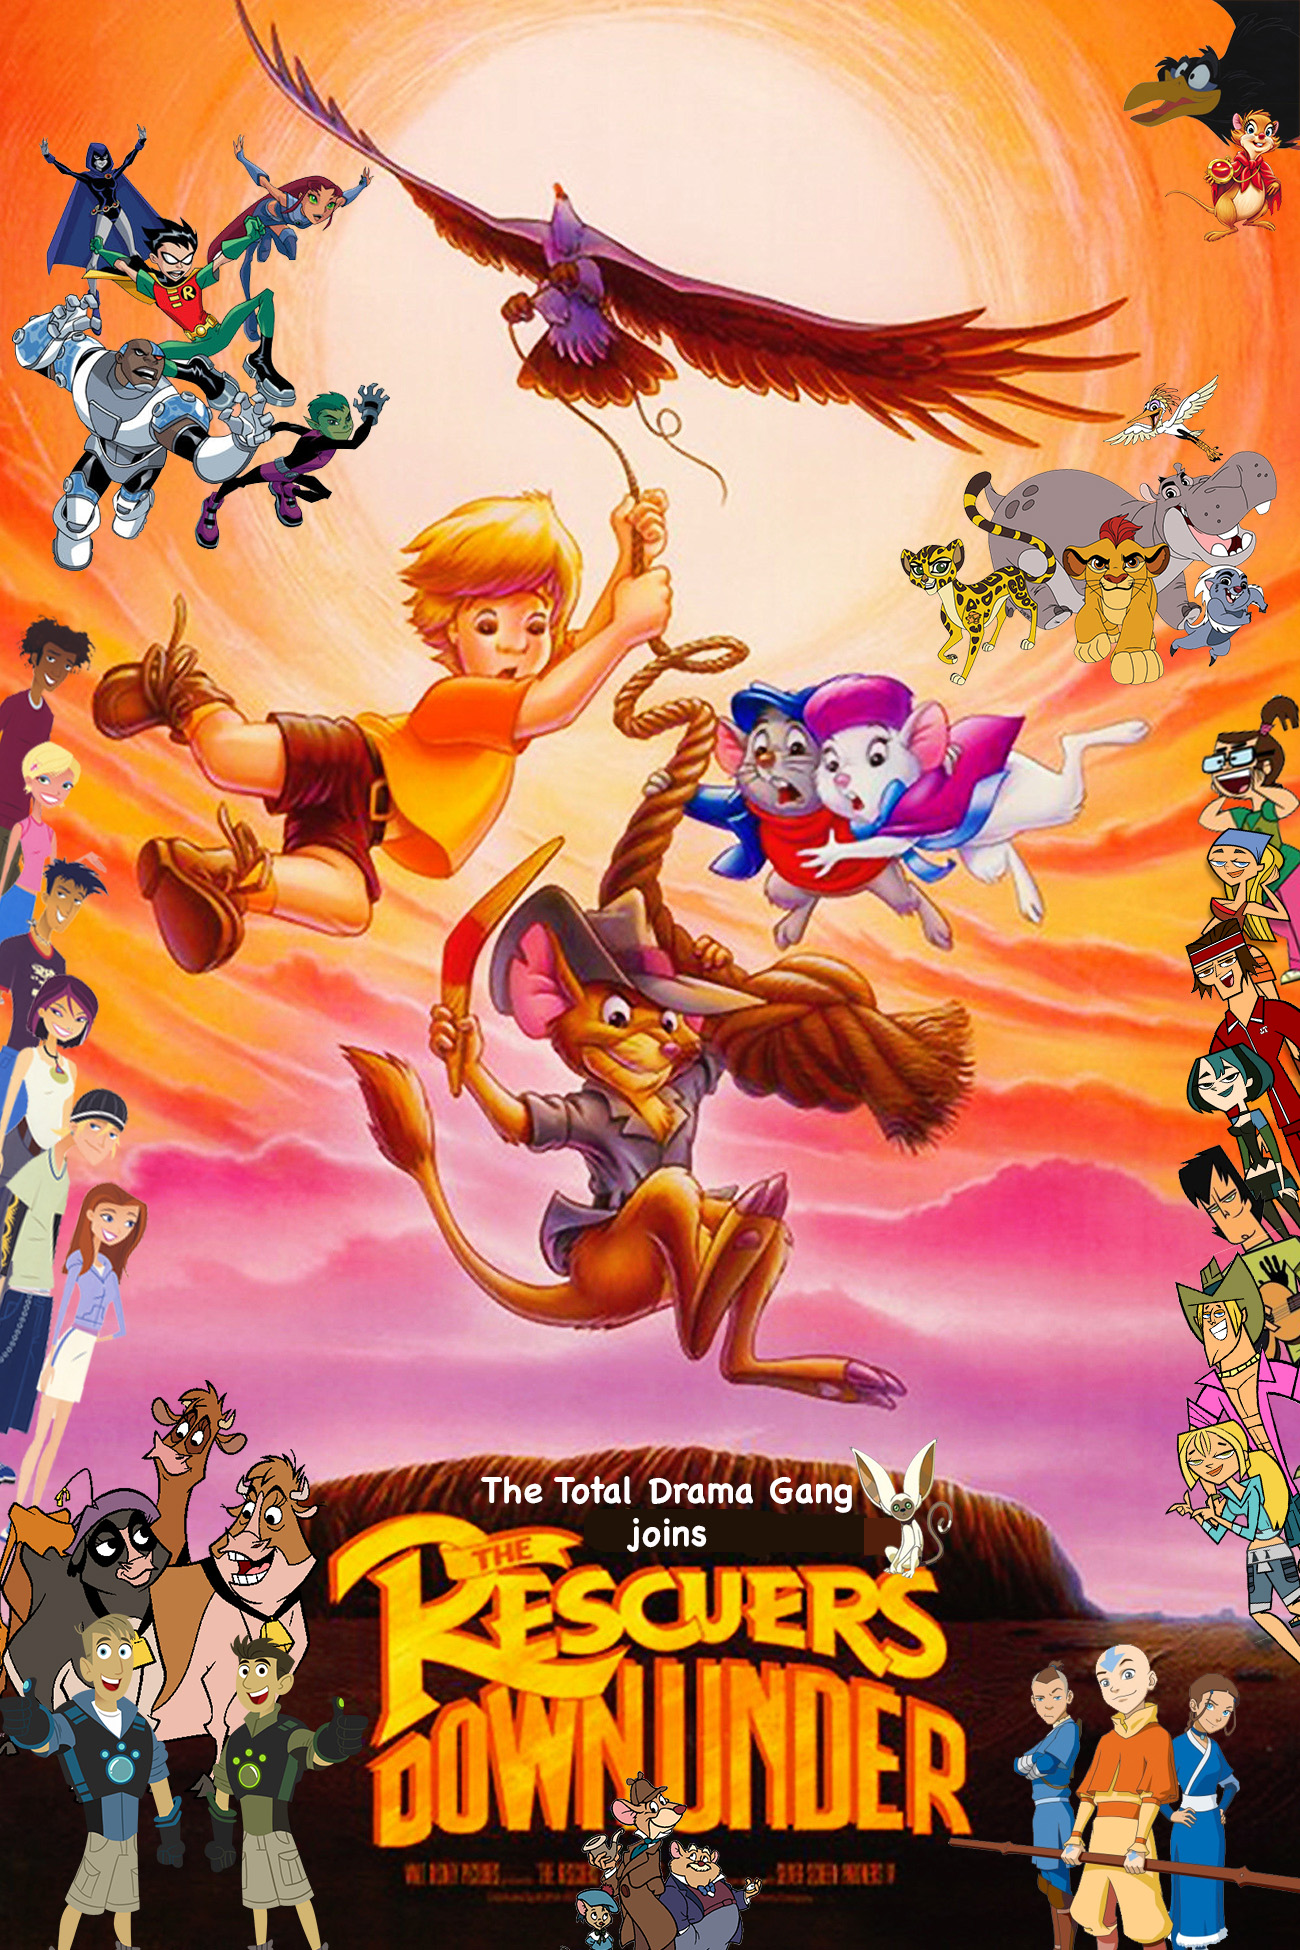 The Total Drama Gang Joins The Rescuers Down Under The